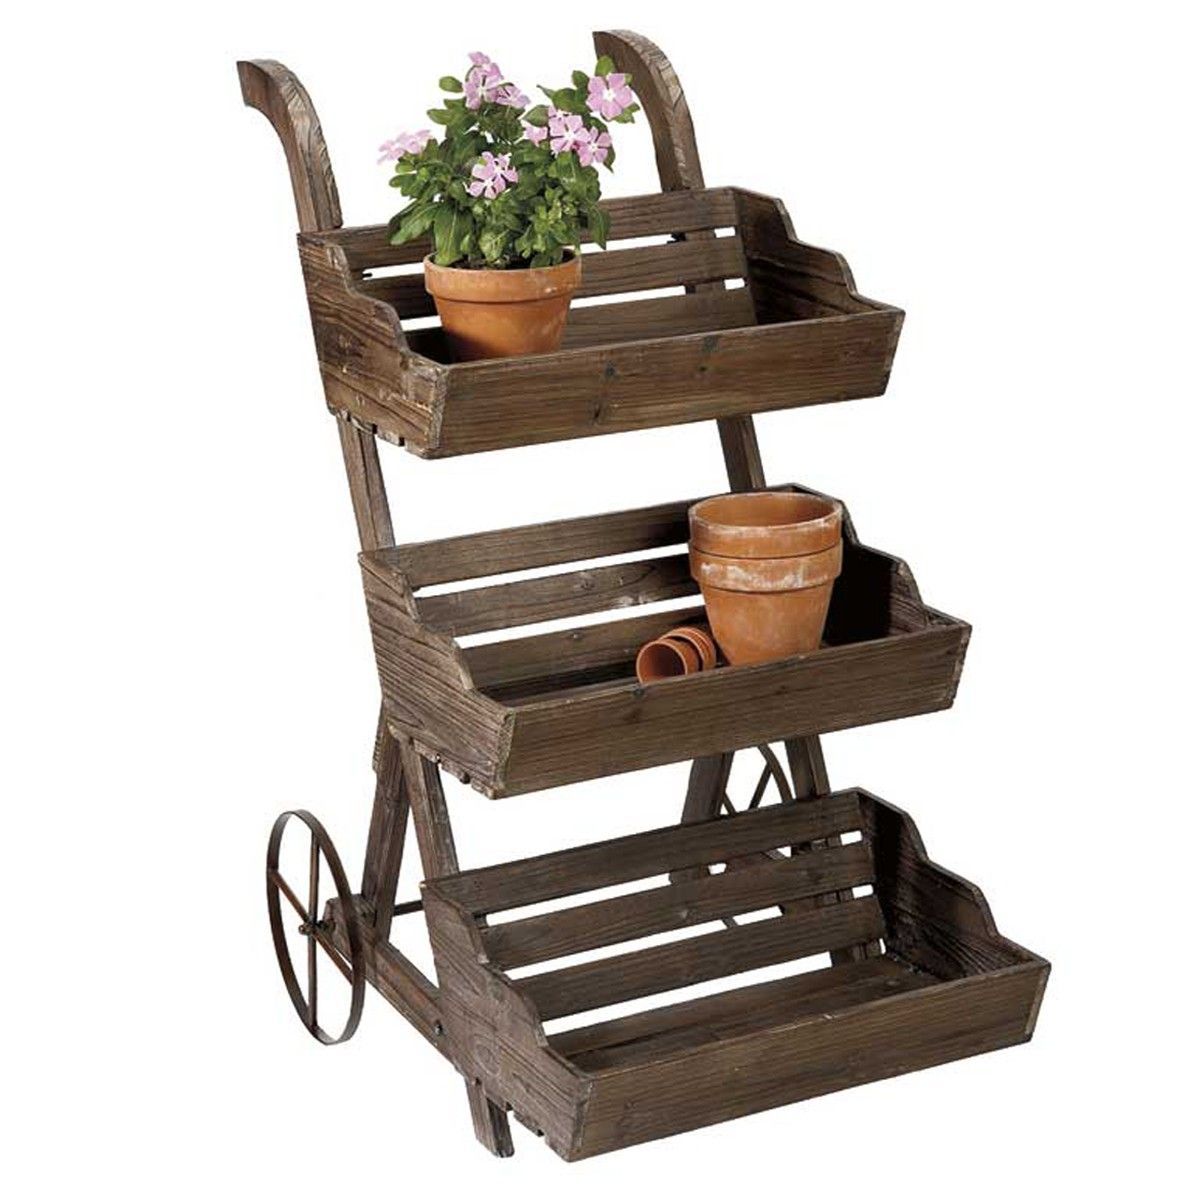 Big Plant Stand Create A Floating Garden With This Three Tiered Plant